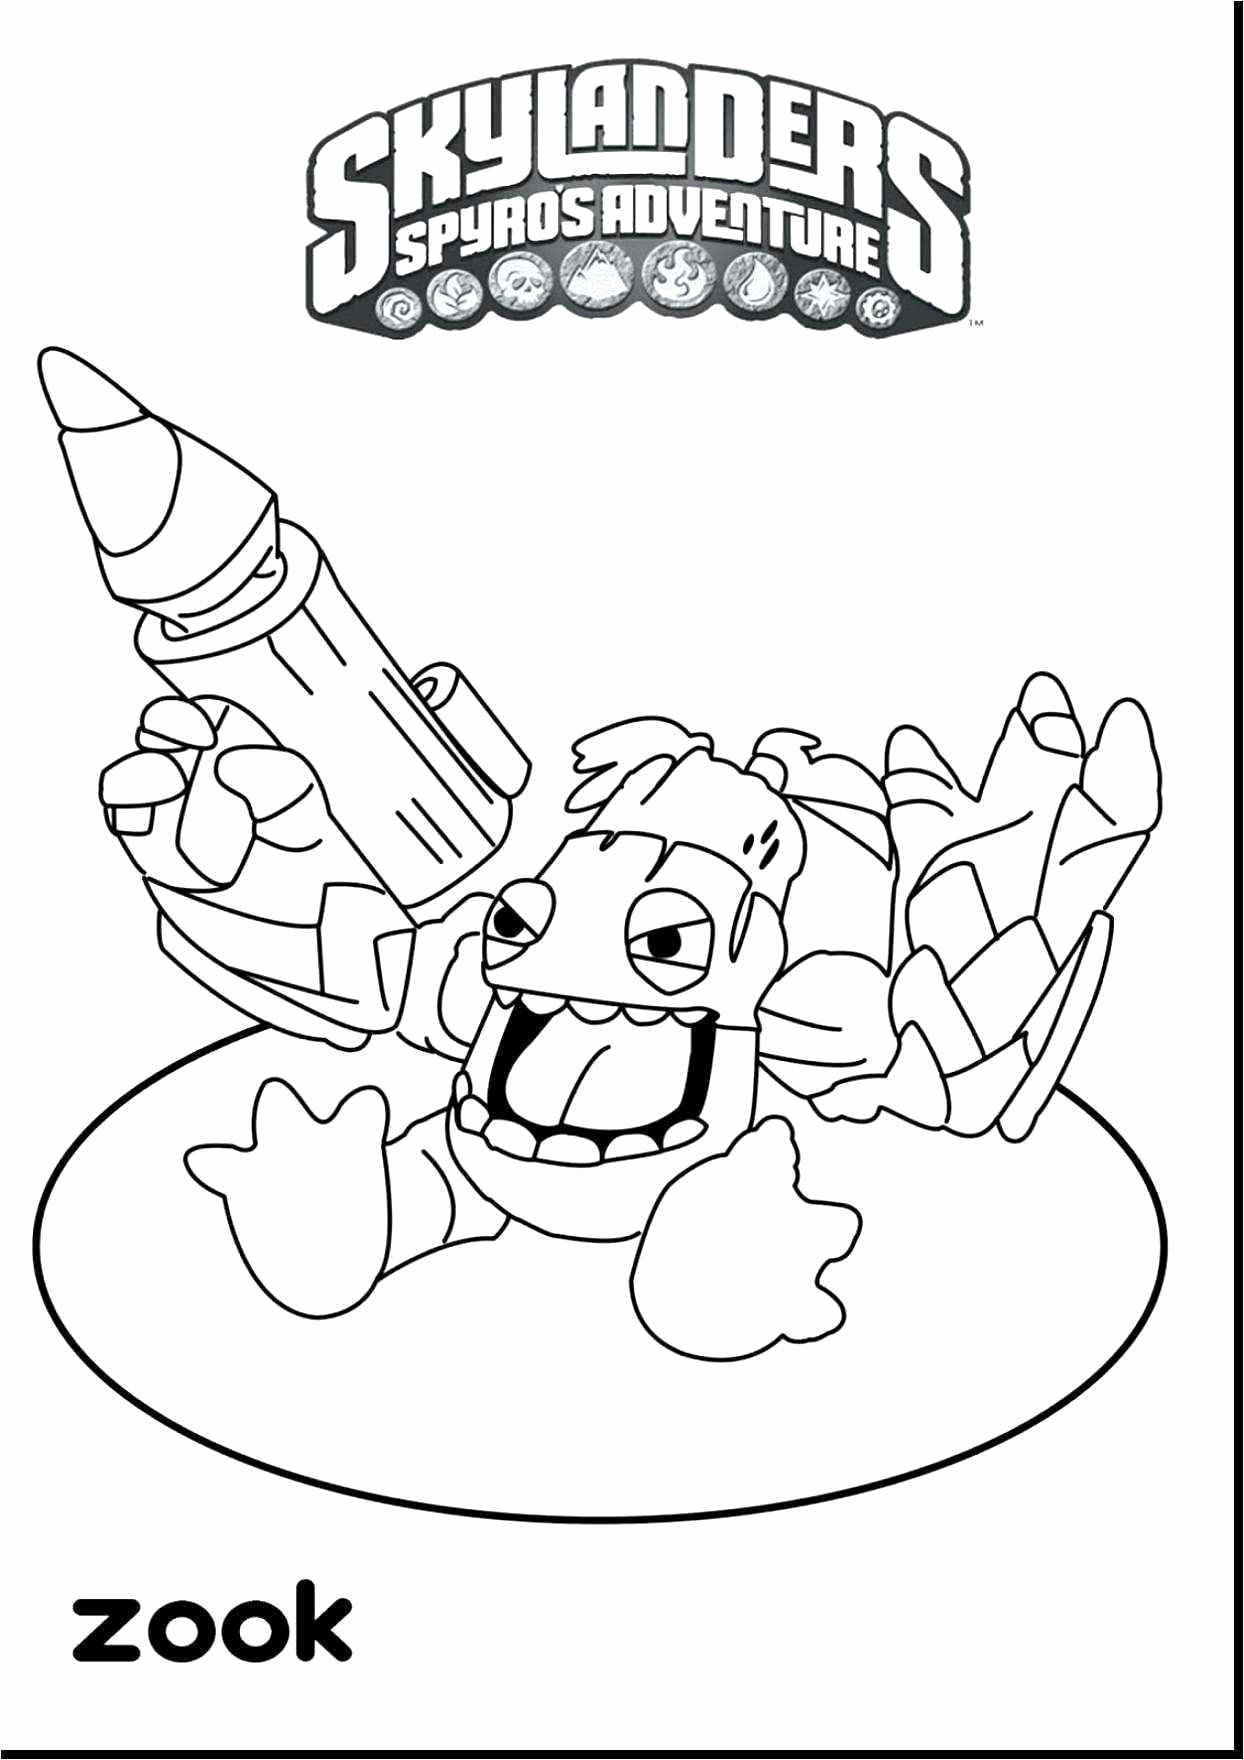 Coloring Pages Of The Countries Beautiful Best United States Air Force Coloring Pages C T In 2020 Unicorn Coloring Pages Pokemon Coloring Pages Animal Coloring Books